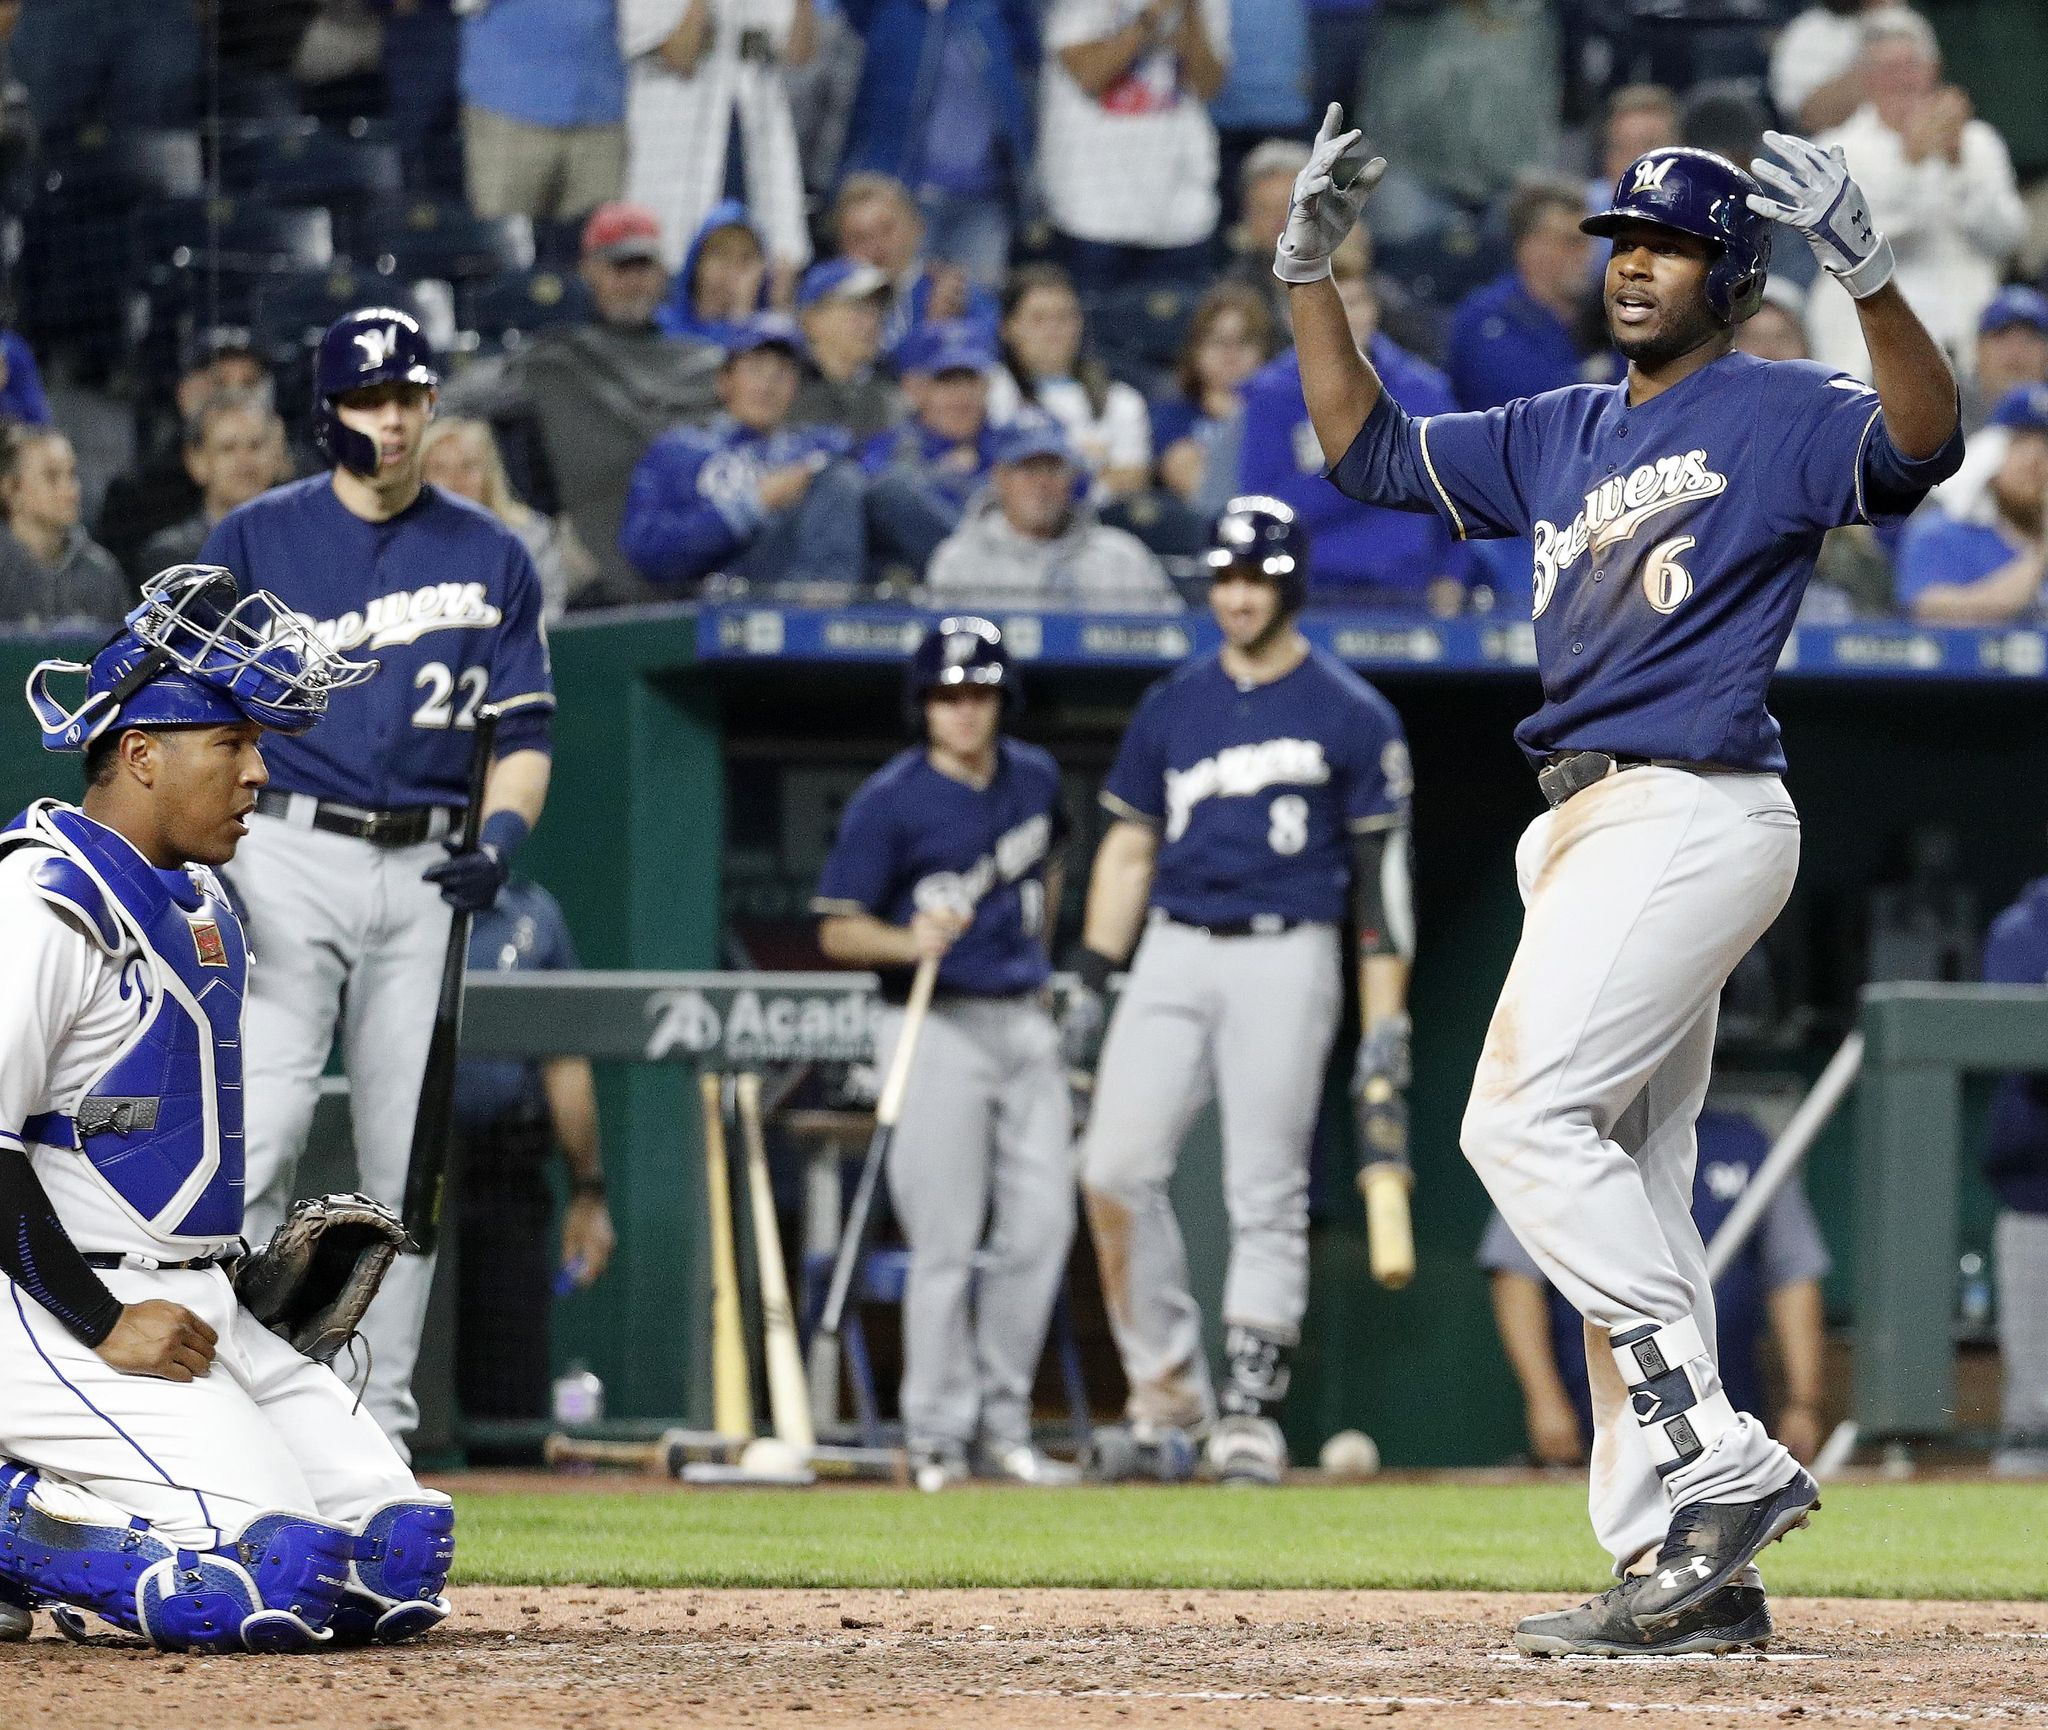 Brewers_royals_baseball_78293_s2048x1730